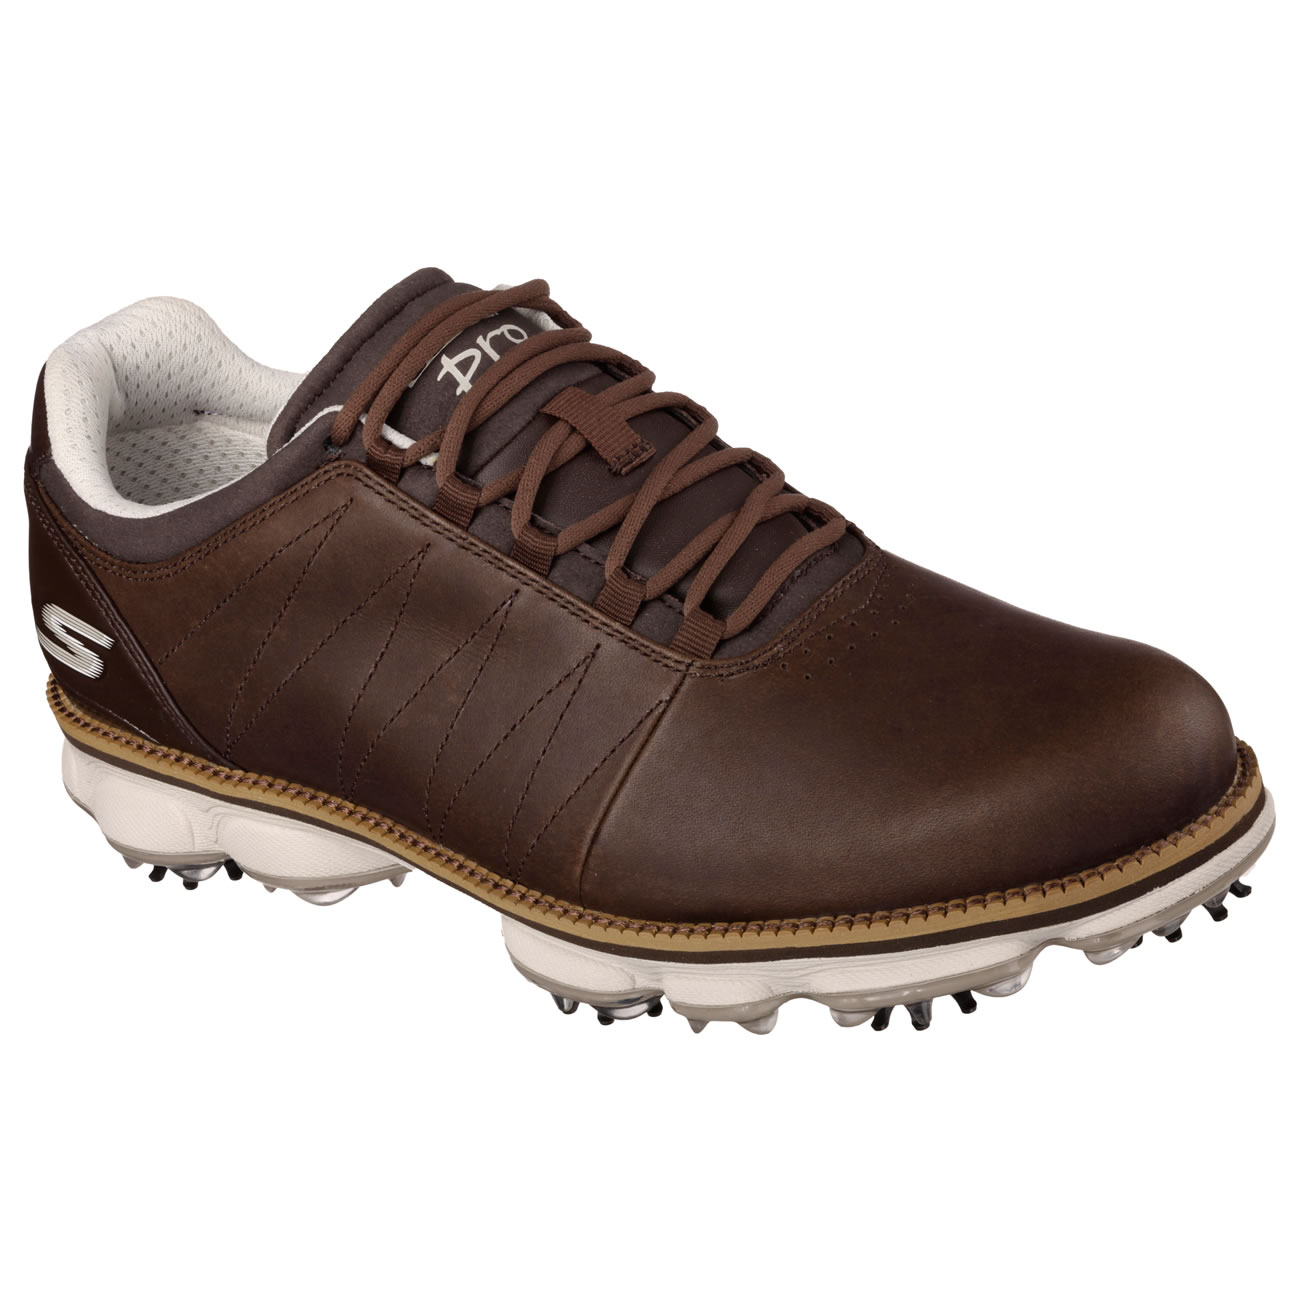 Skechers Brown Kuchar Golf Shoes Size  Uk